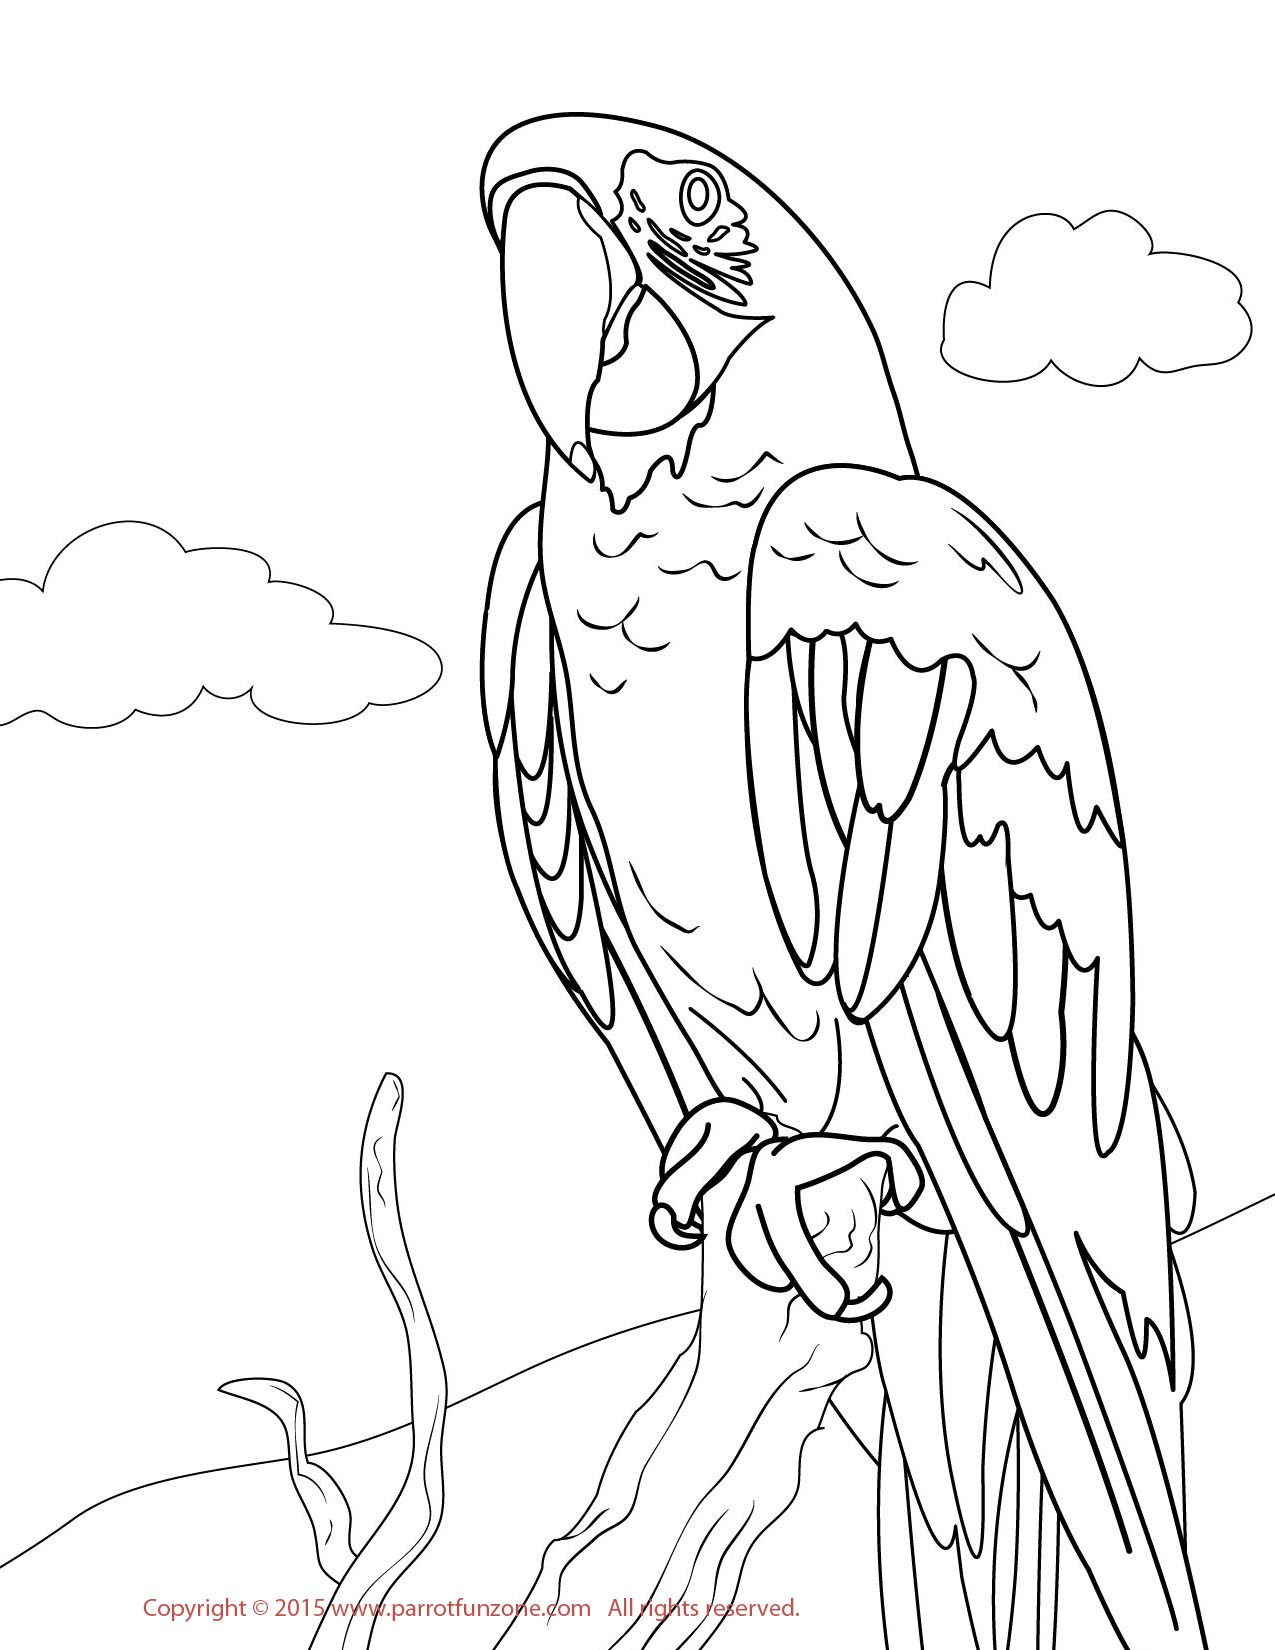 Parrot Coloring Pages Macaw Parrot Coloring Pages 2019 Open Coloring Pages